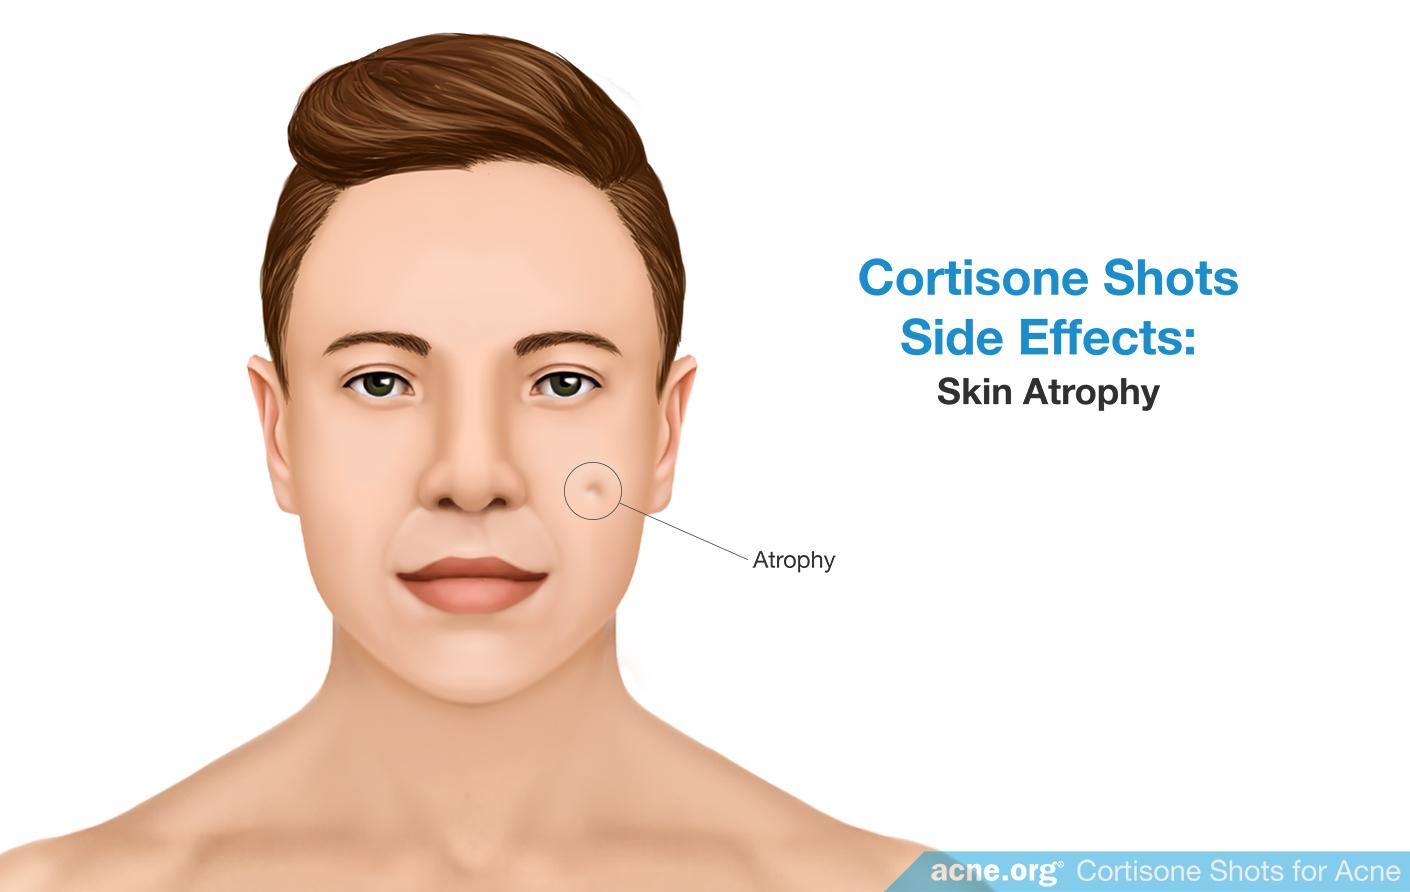 Cortisone Side Effects: Skin Atrophy